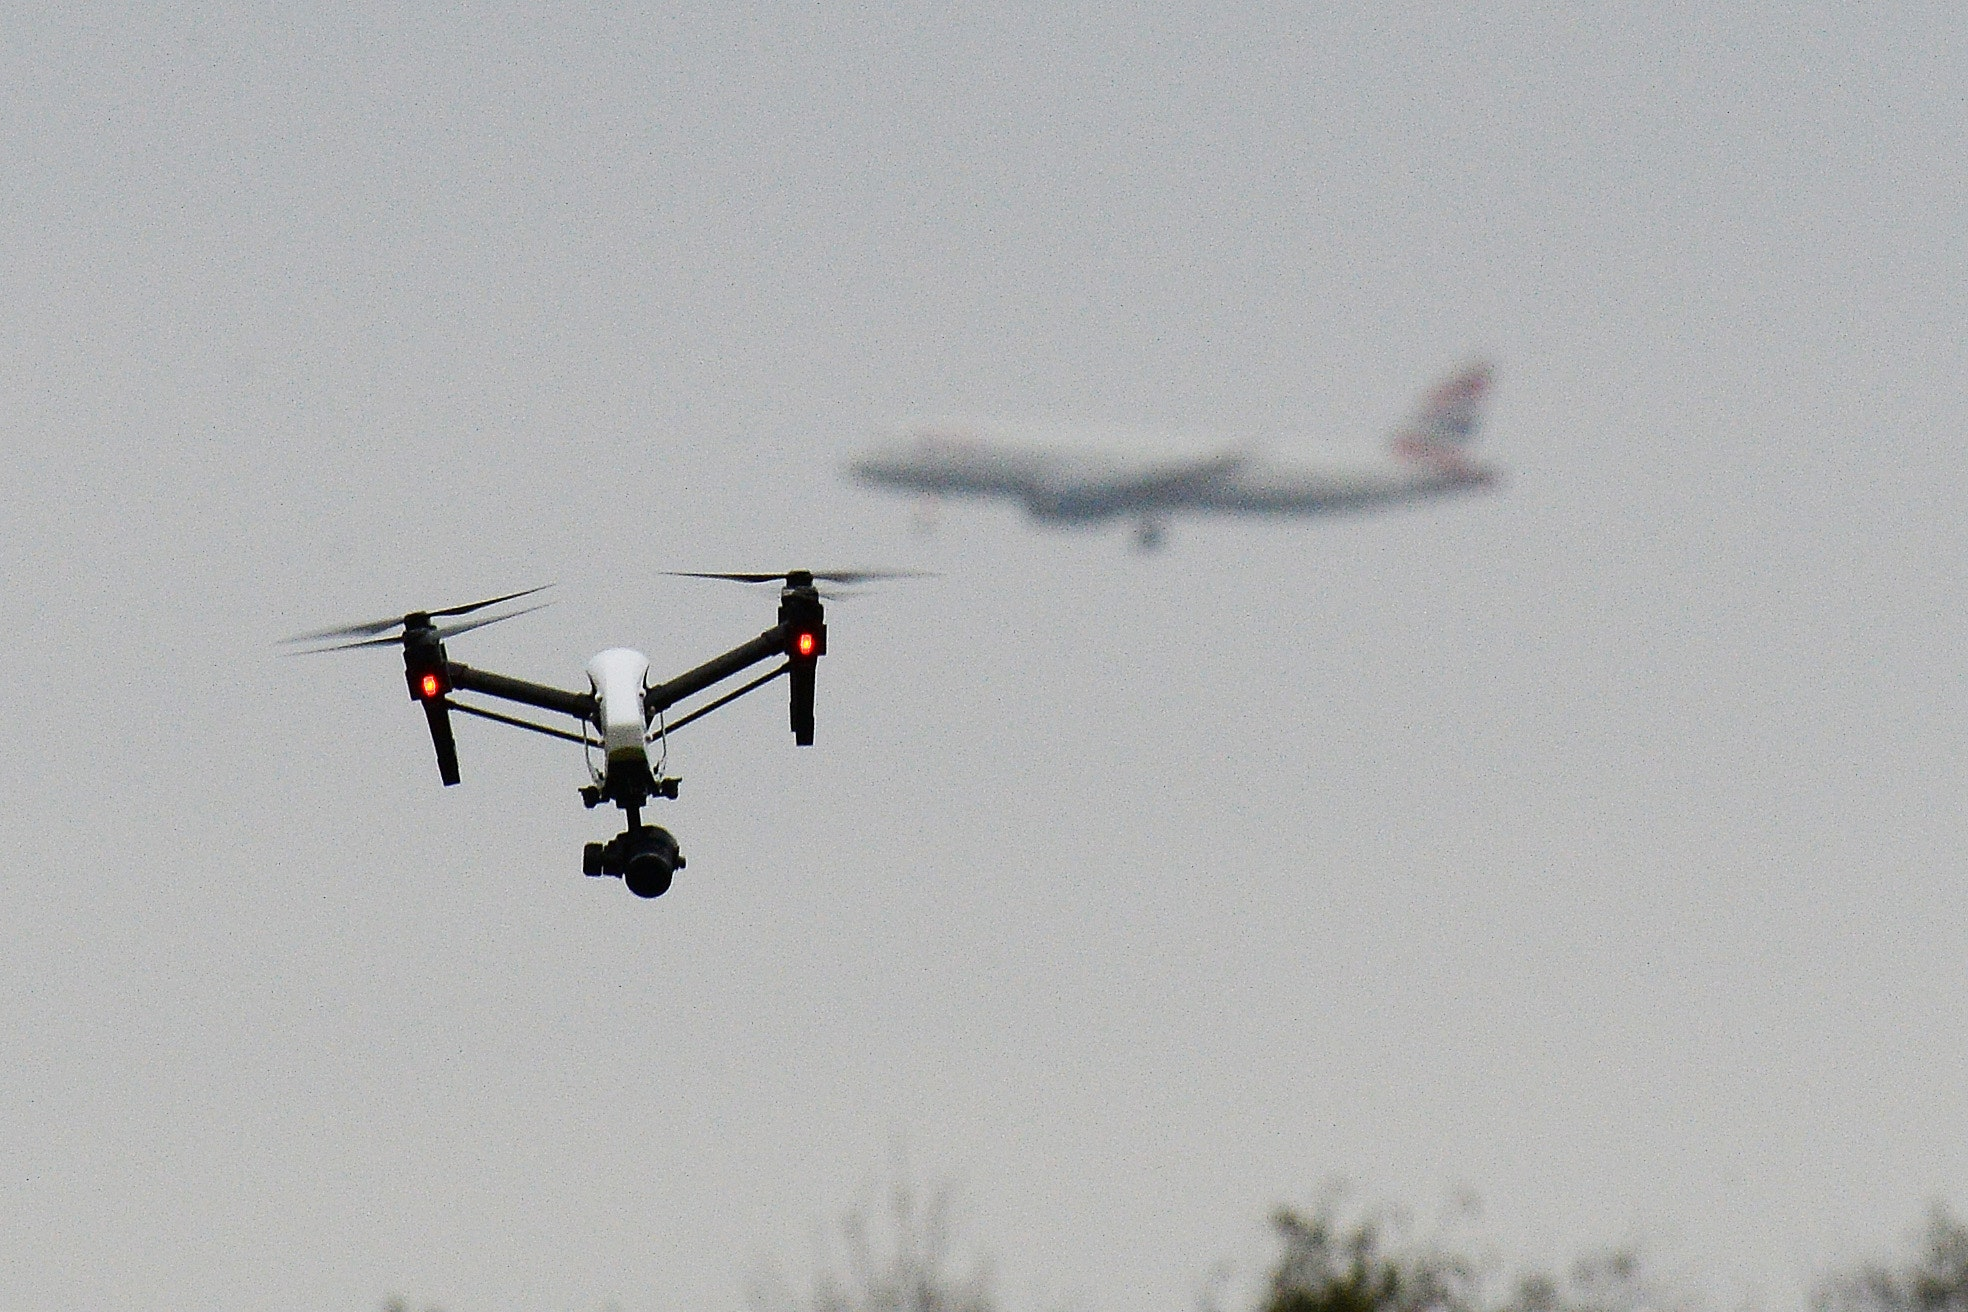 A drone flies in west London as a British Airways plane prepares to land at London Heathrow airport (John Stillwell/PA)